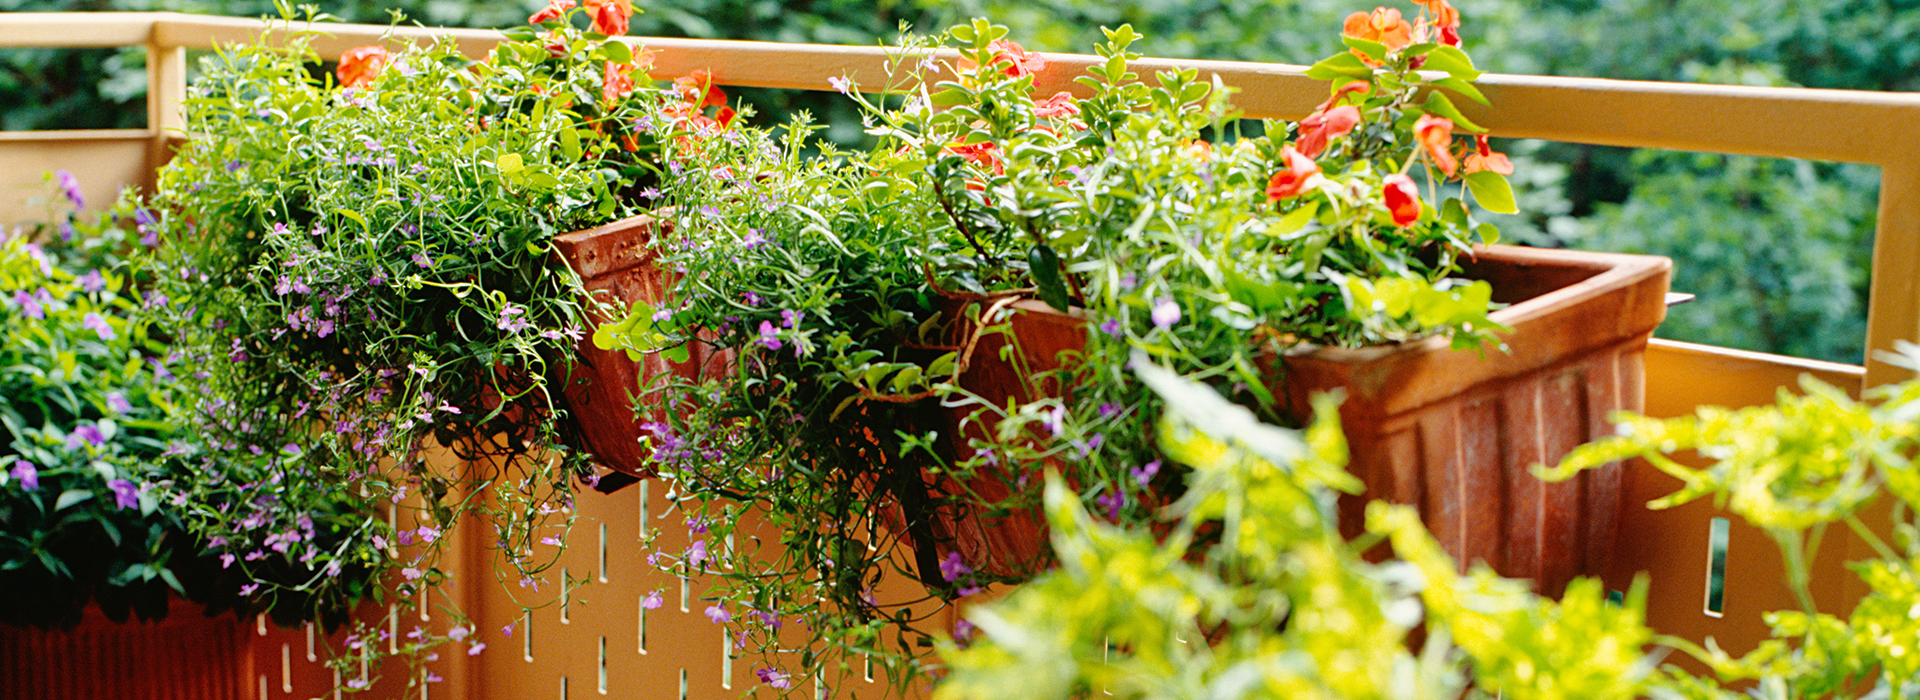 Awesome Balcony Garden Ideas That You Will Love